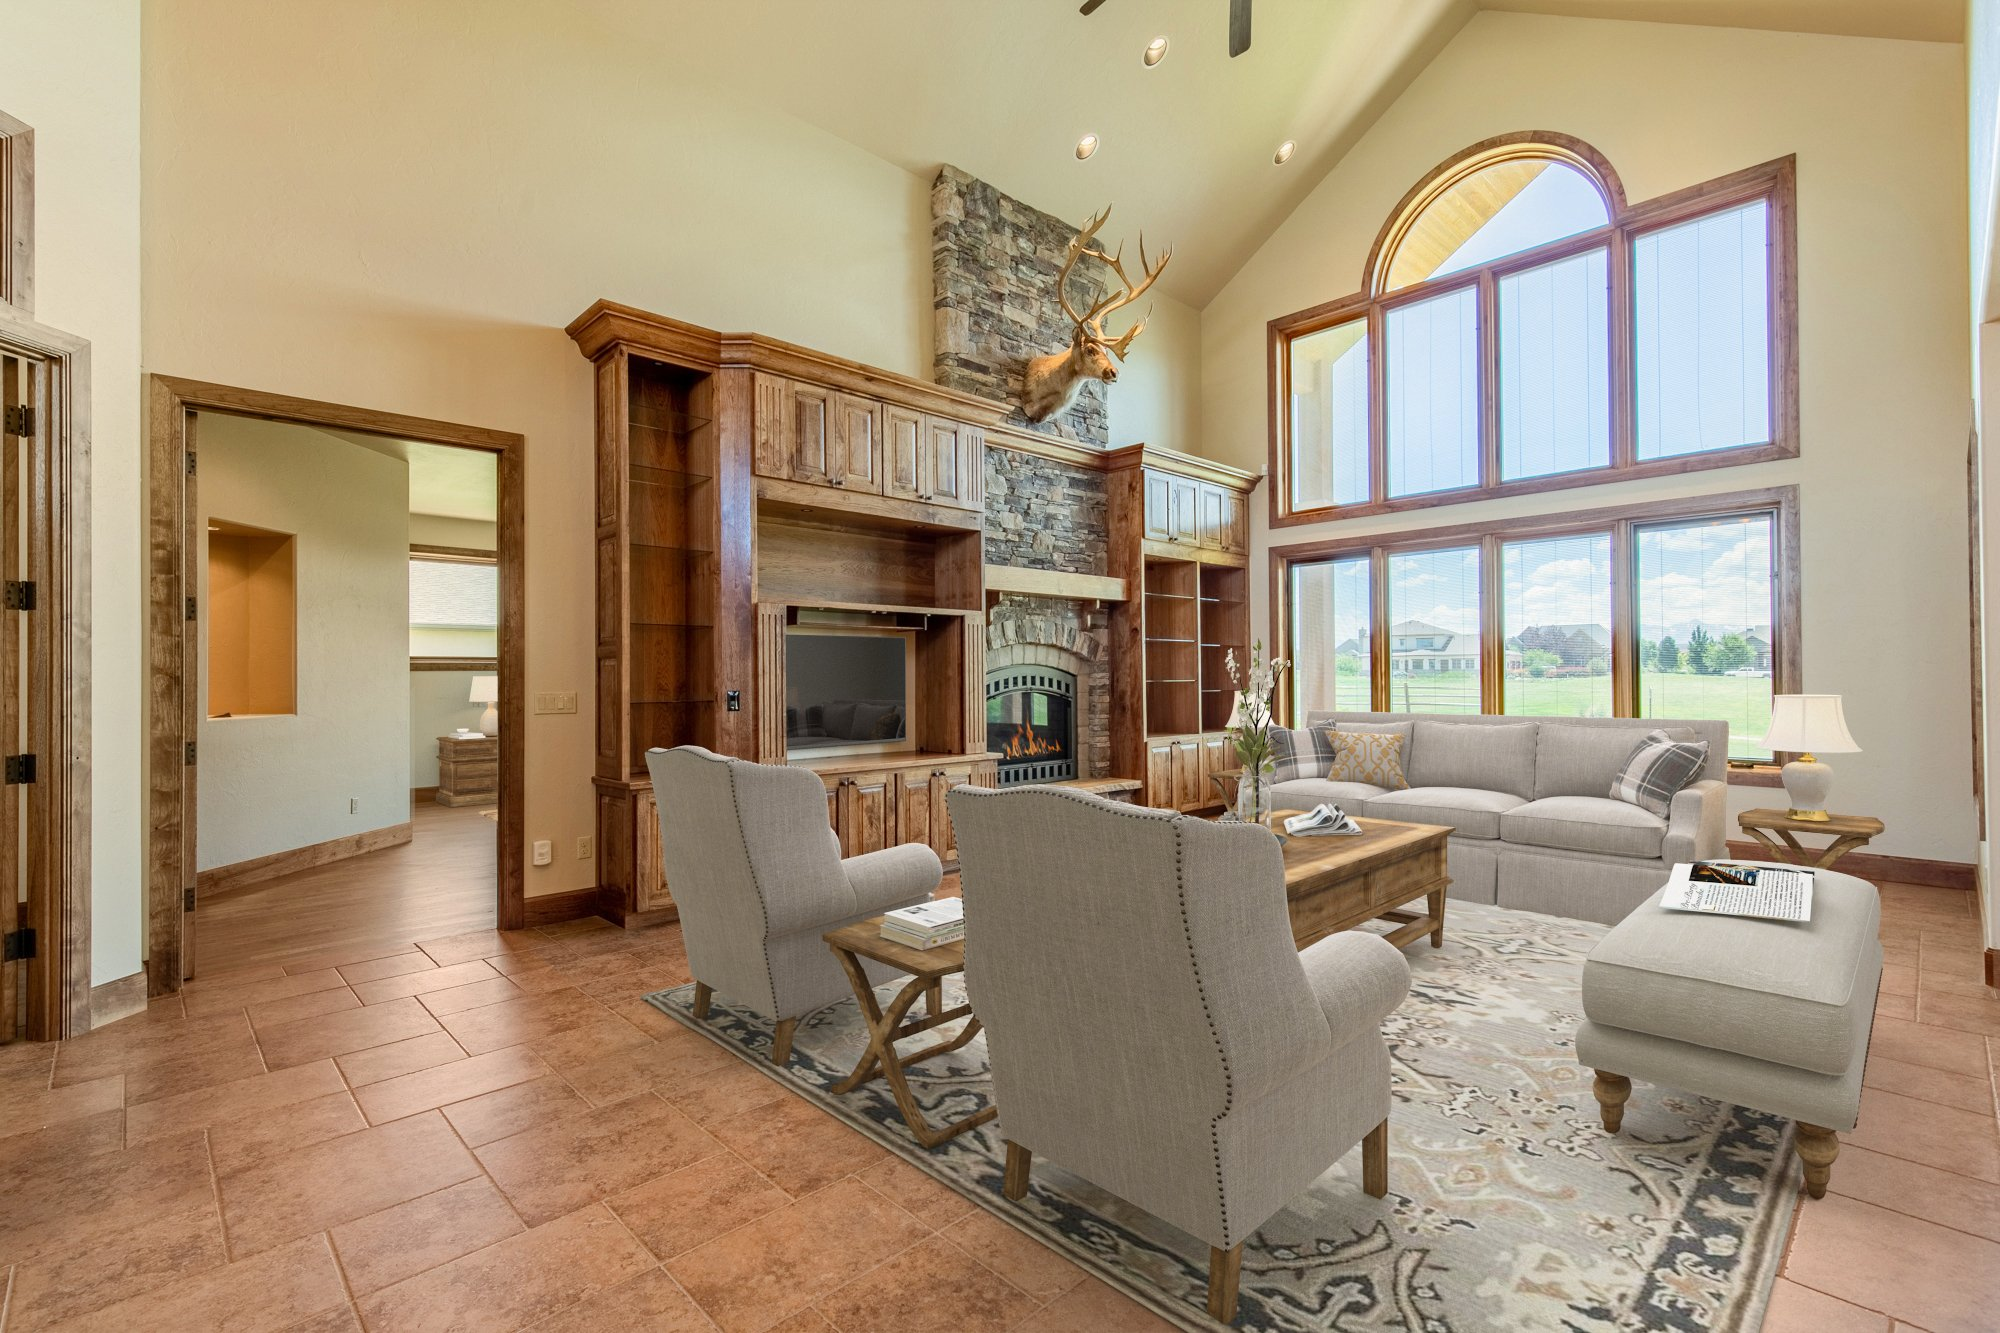 Living Room with Fireplace - 924 Courthouse Peak Lane Montrose, CO 81403 - Atha Team Golf Luxury Real Estate